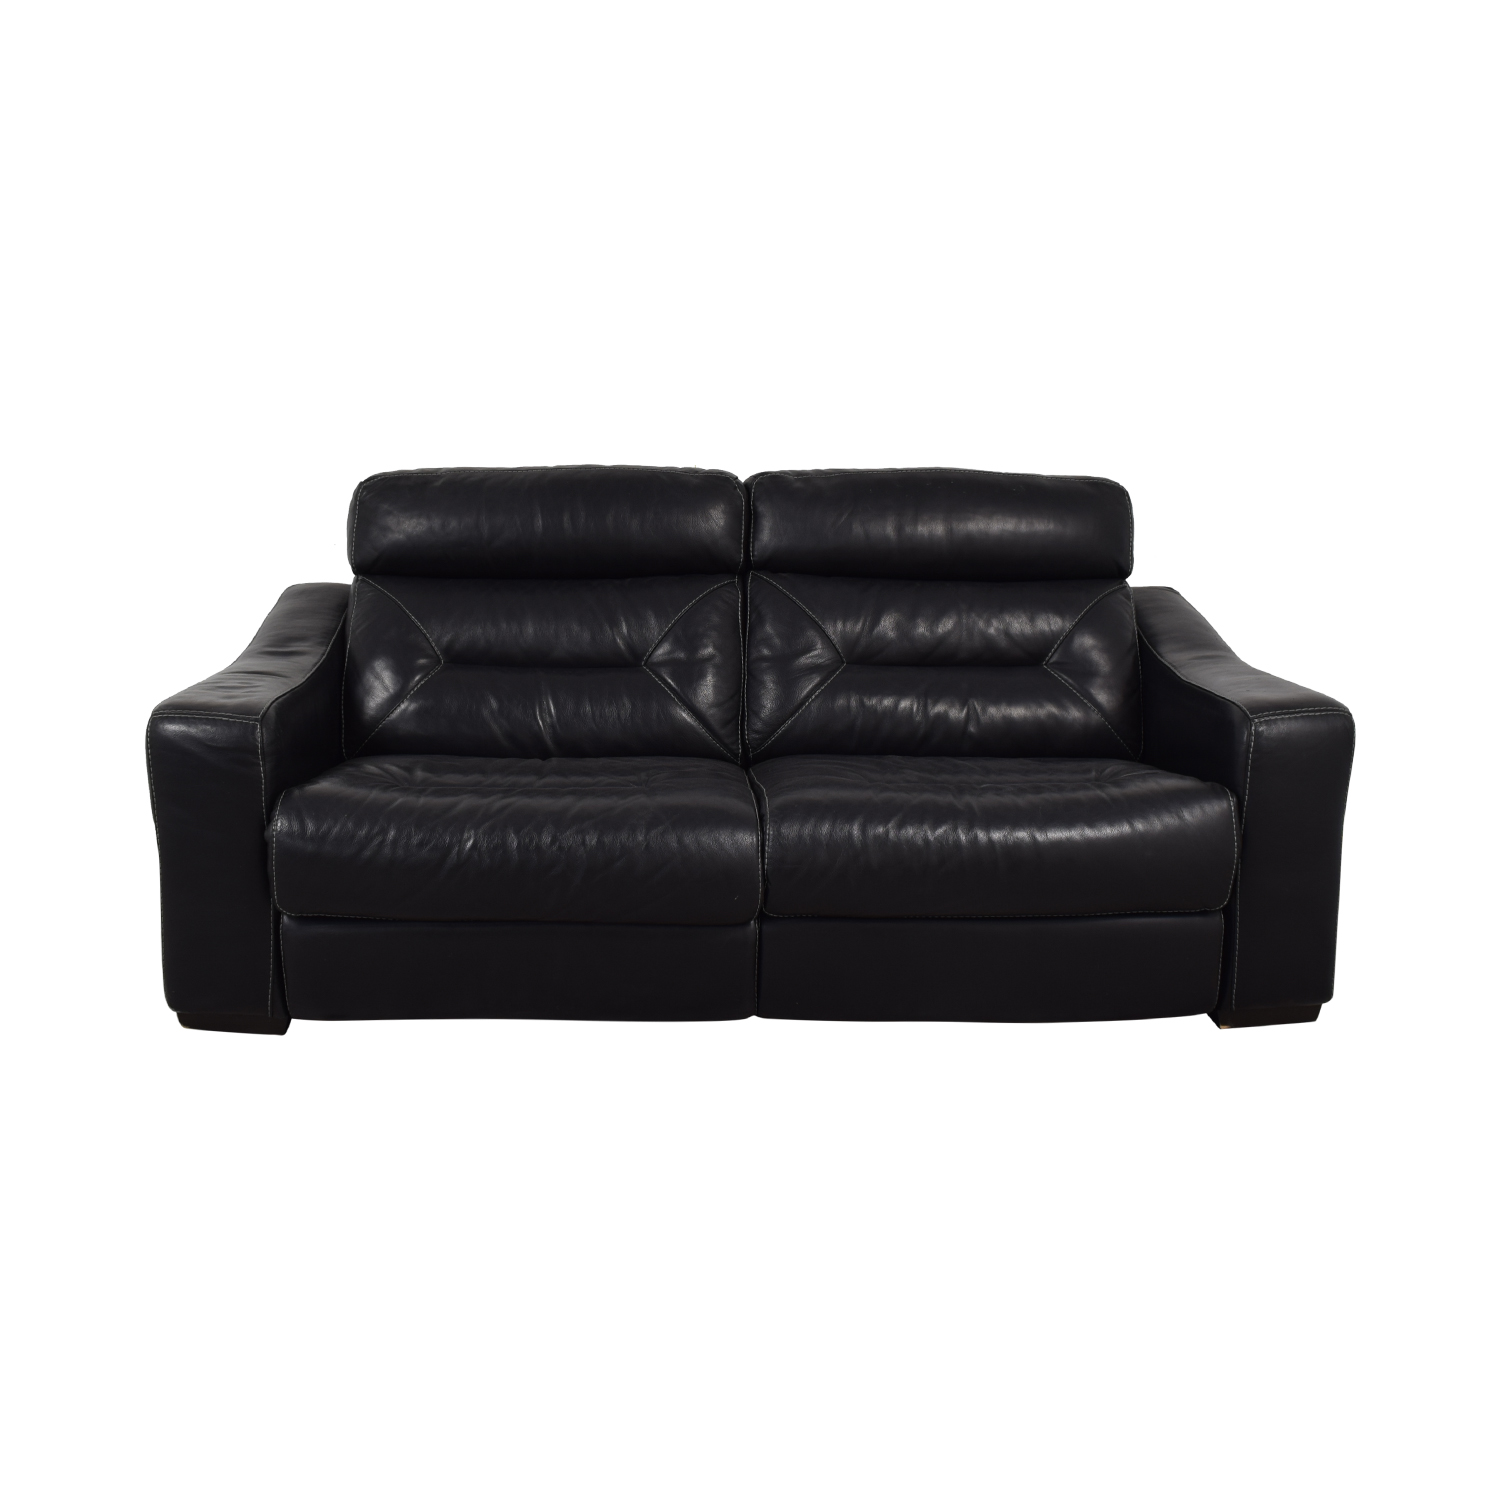 Prime 88 Off Macys Macys Judson Leather Dual Power Reclining Loveseat Sofas Evergreenethics Interior Chair Design Evergreenethicsorg